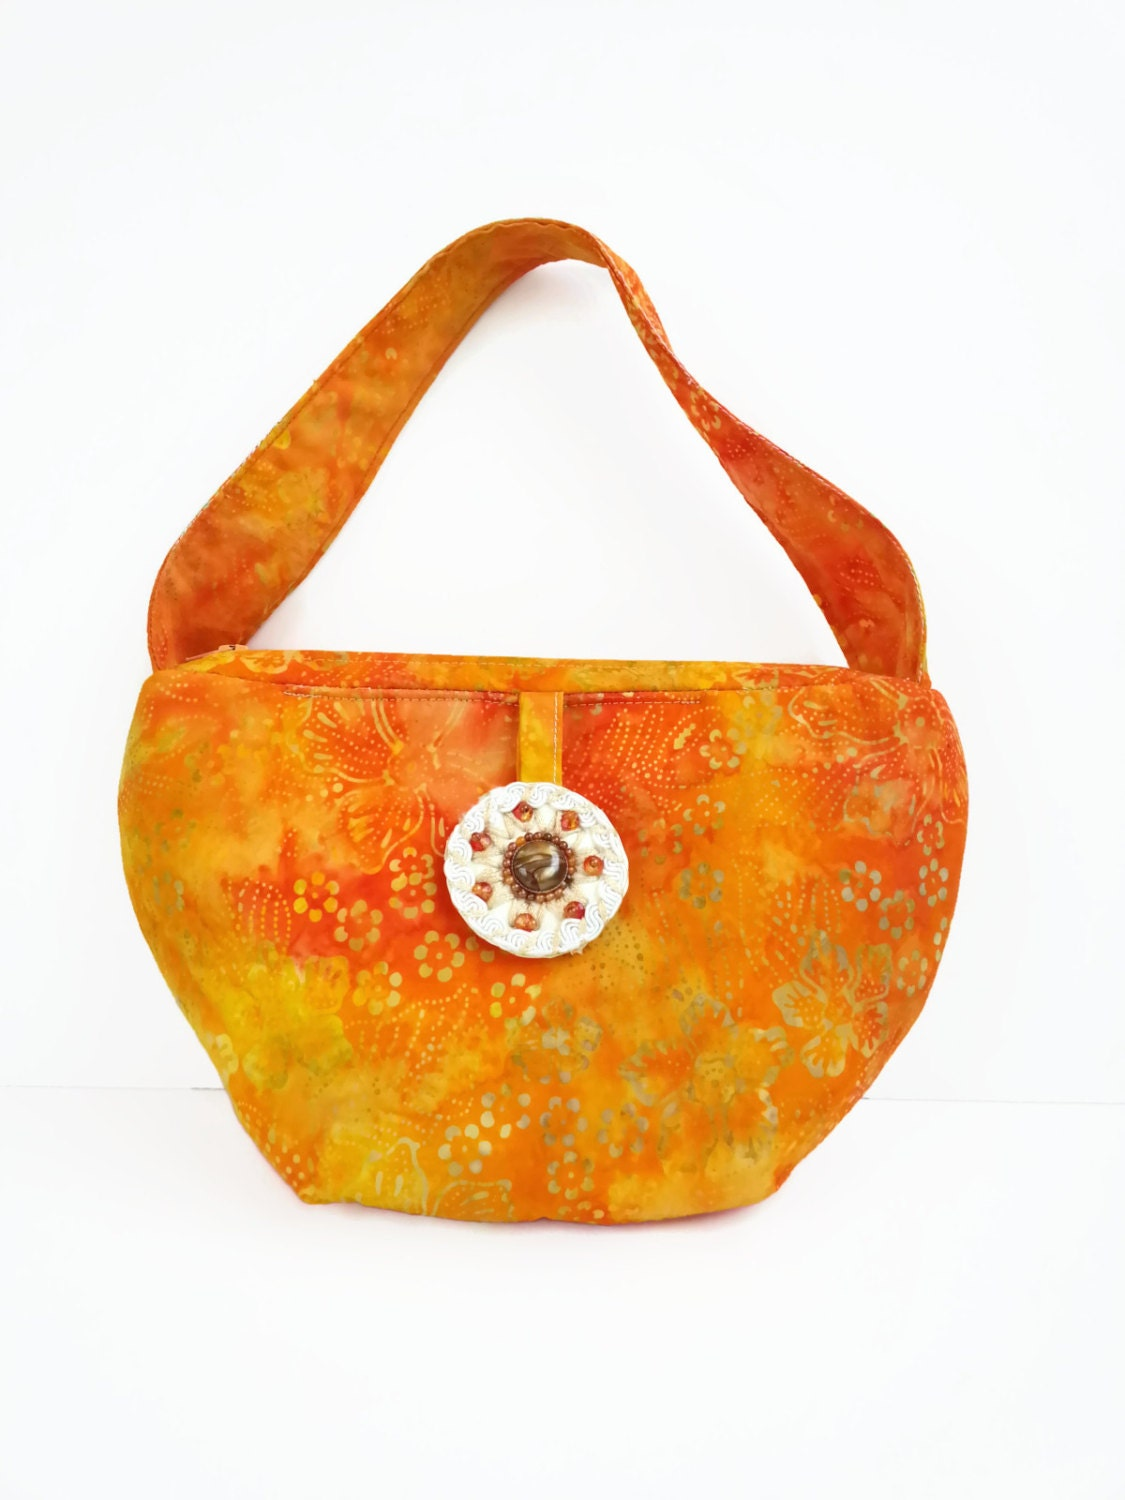 Orange Tie Dye Purse in my Gypsy Girl Fashions Shop